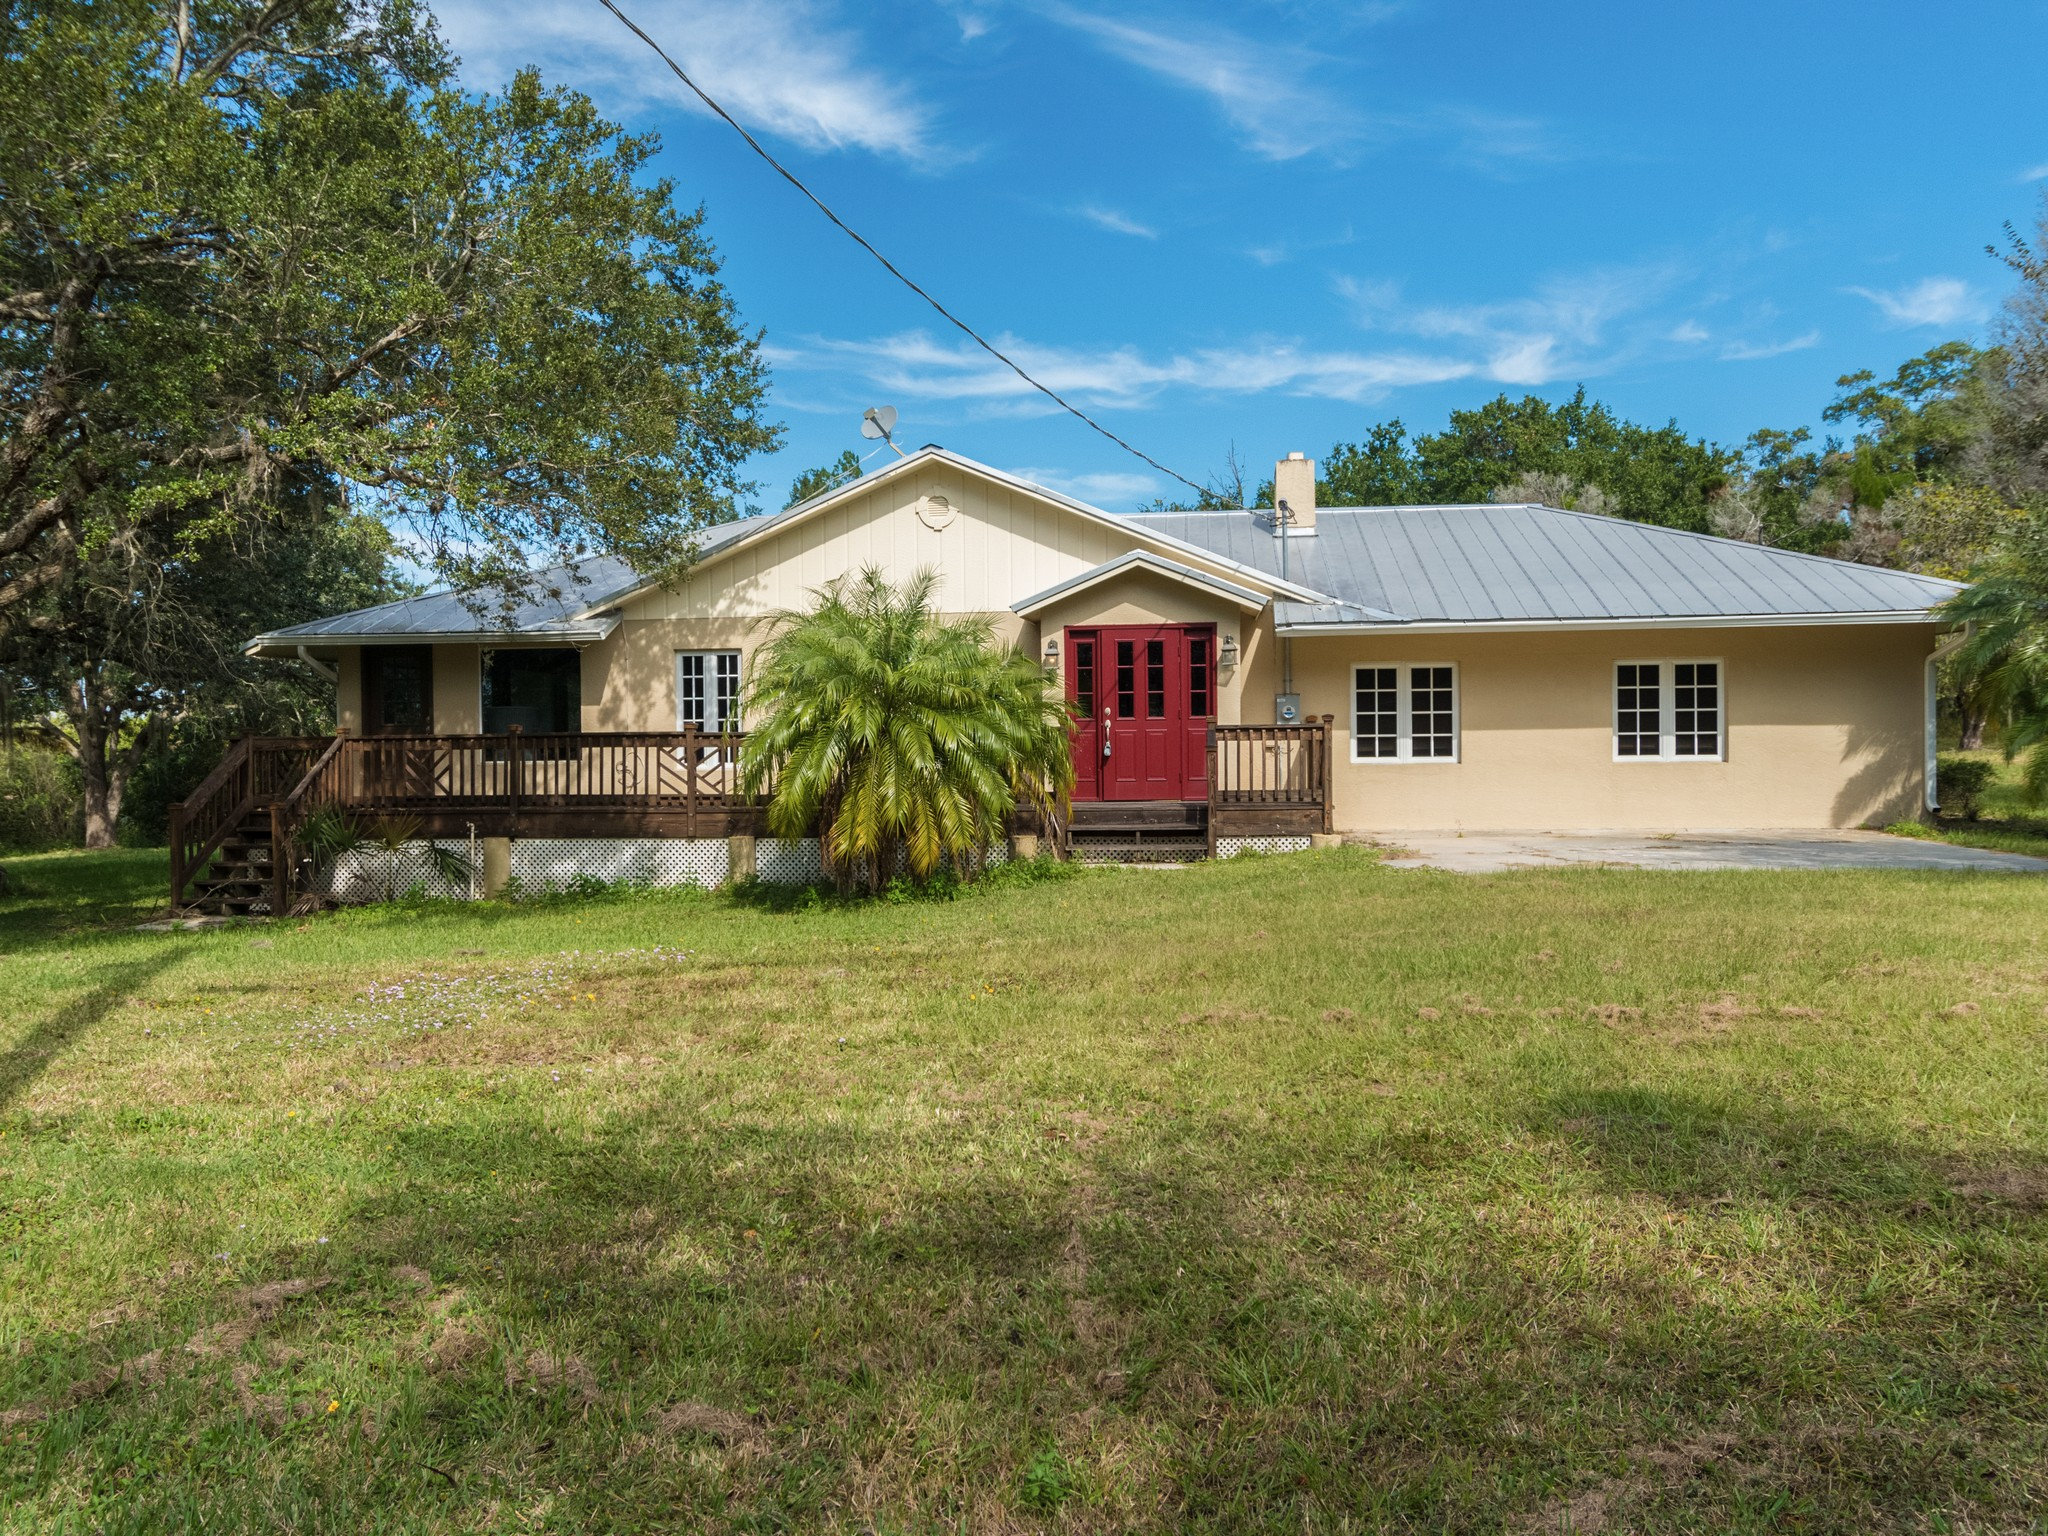 Maison unifamiliale pour l Vente à riverfront home on 5 acres plus lot 11725 Roseland Road + 11705 Roseland Road Sebastian, Florida 32958 États-Unis